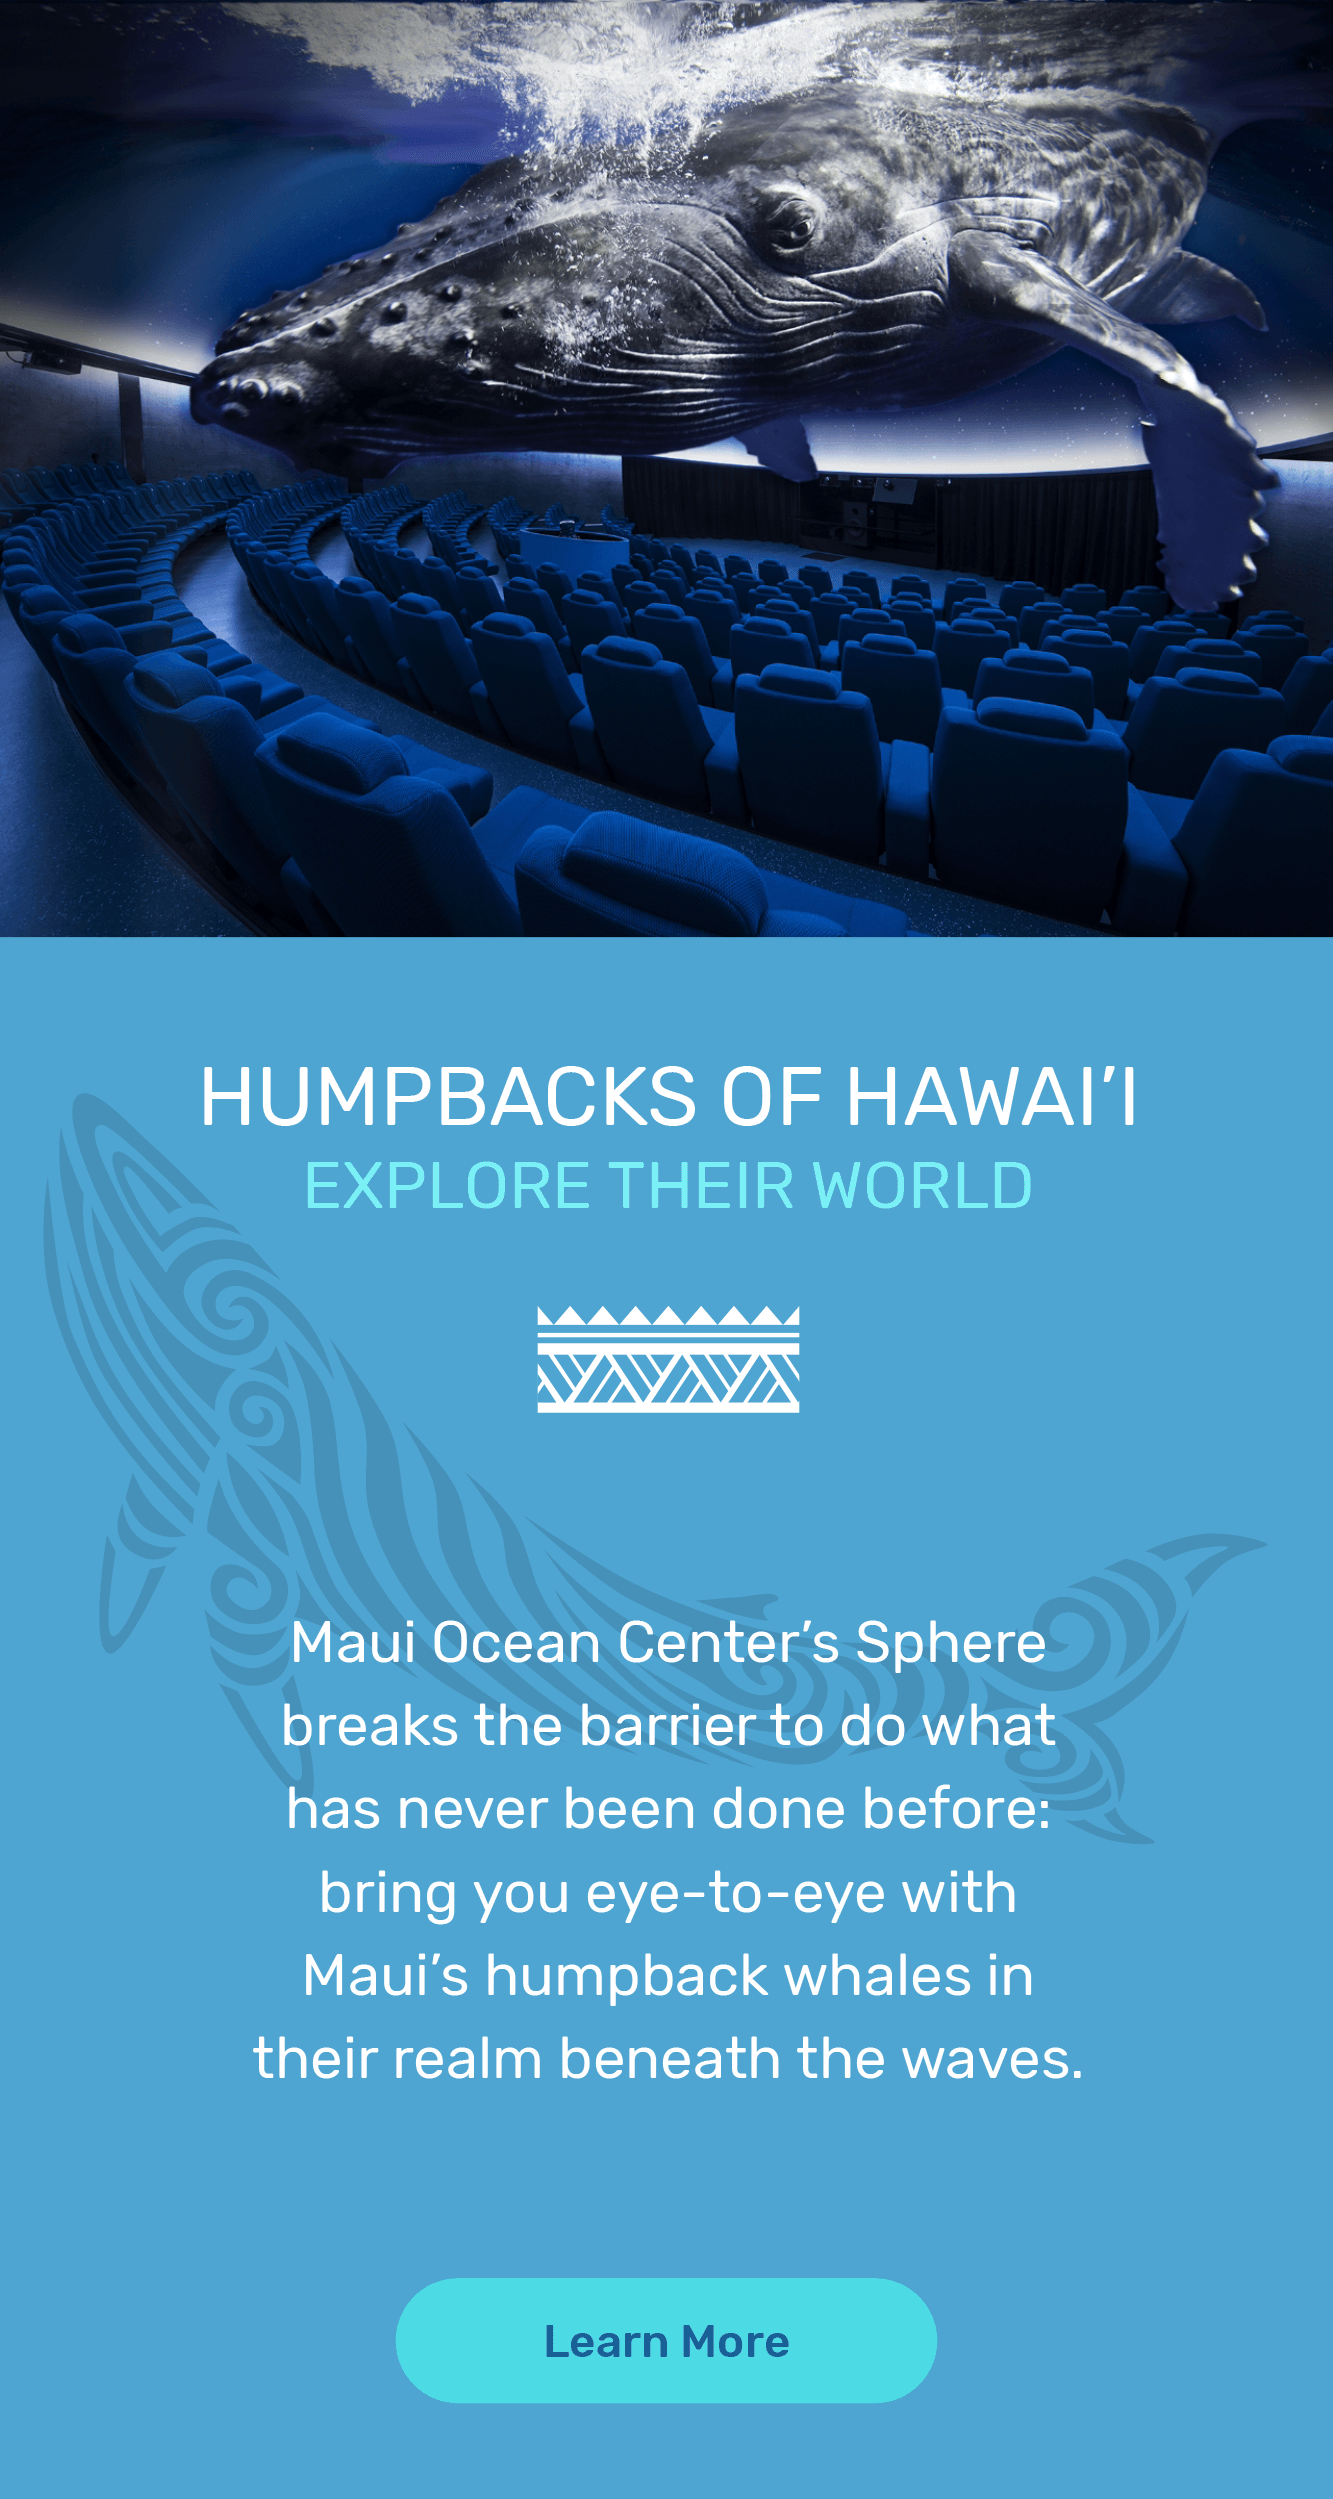 Humpbacks of Hawai'i